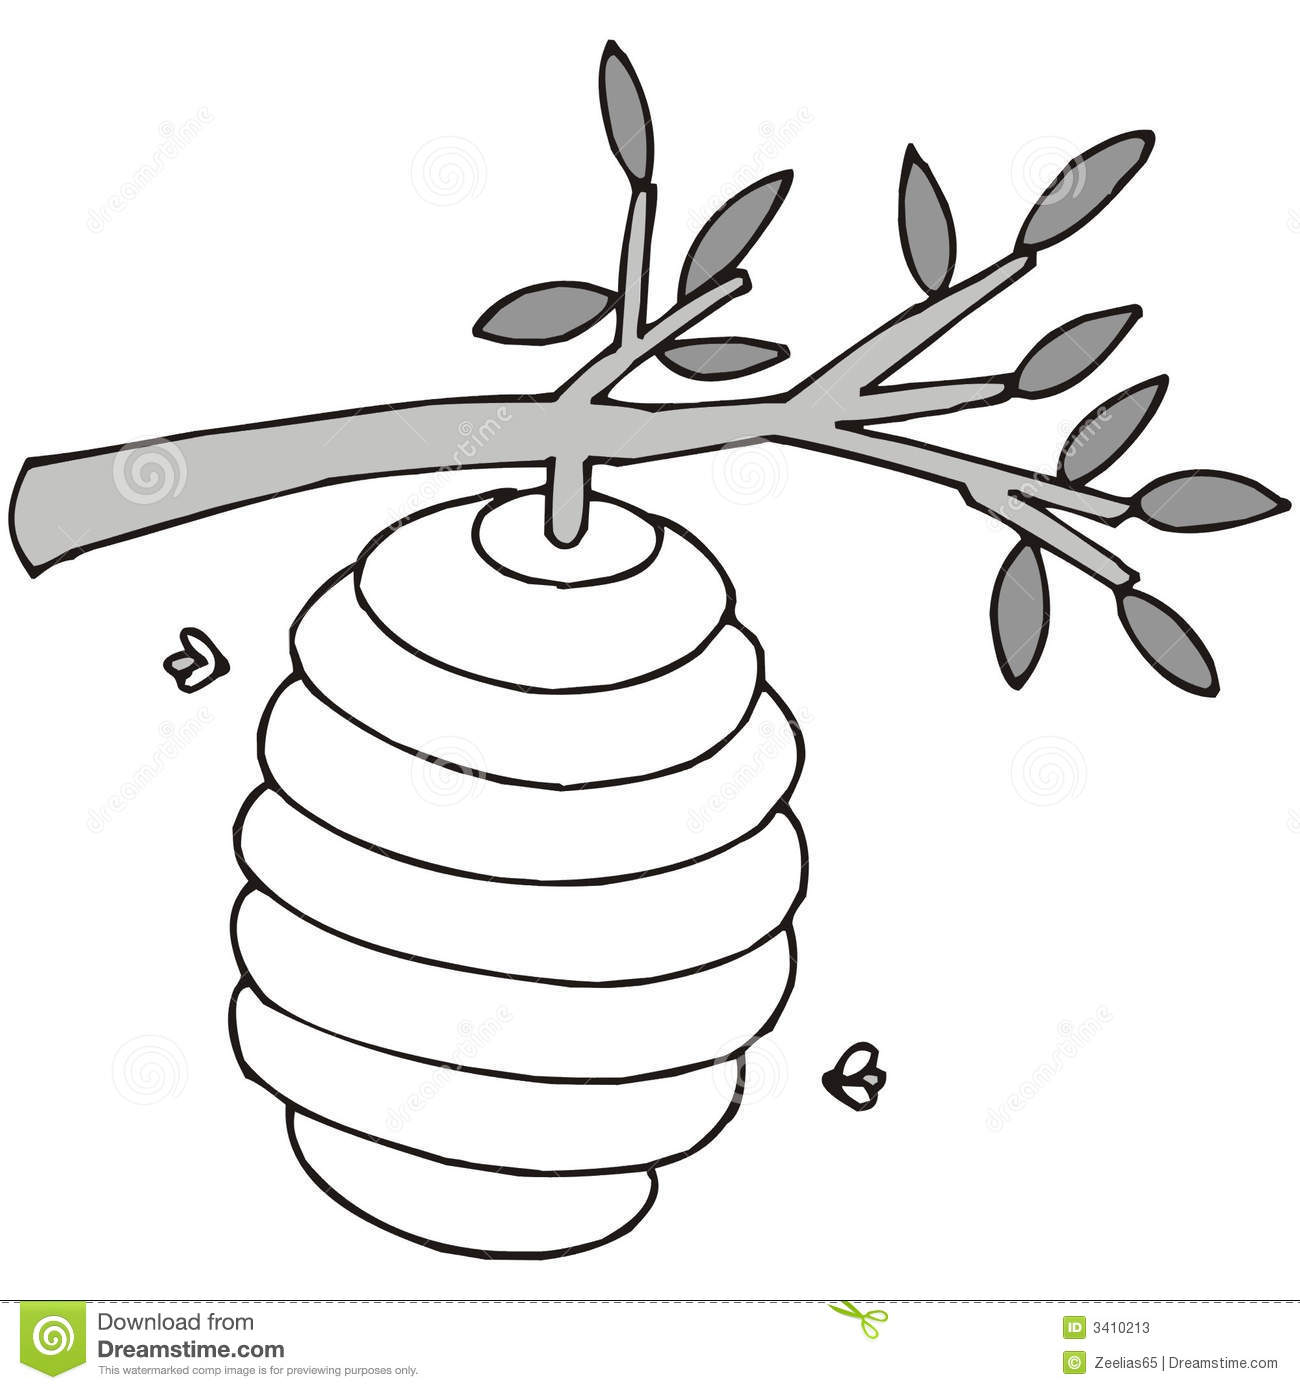 Art Illustration In Black And White A Be-Art Illustration In Black And White A Beehive-2